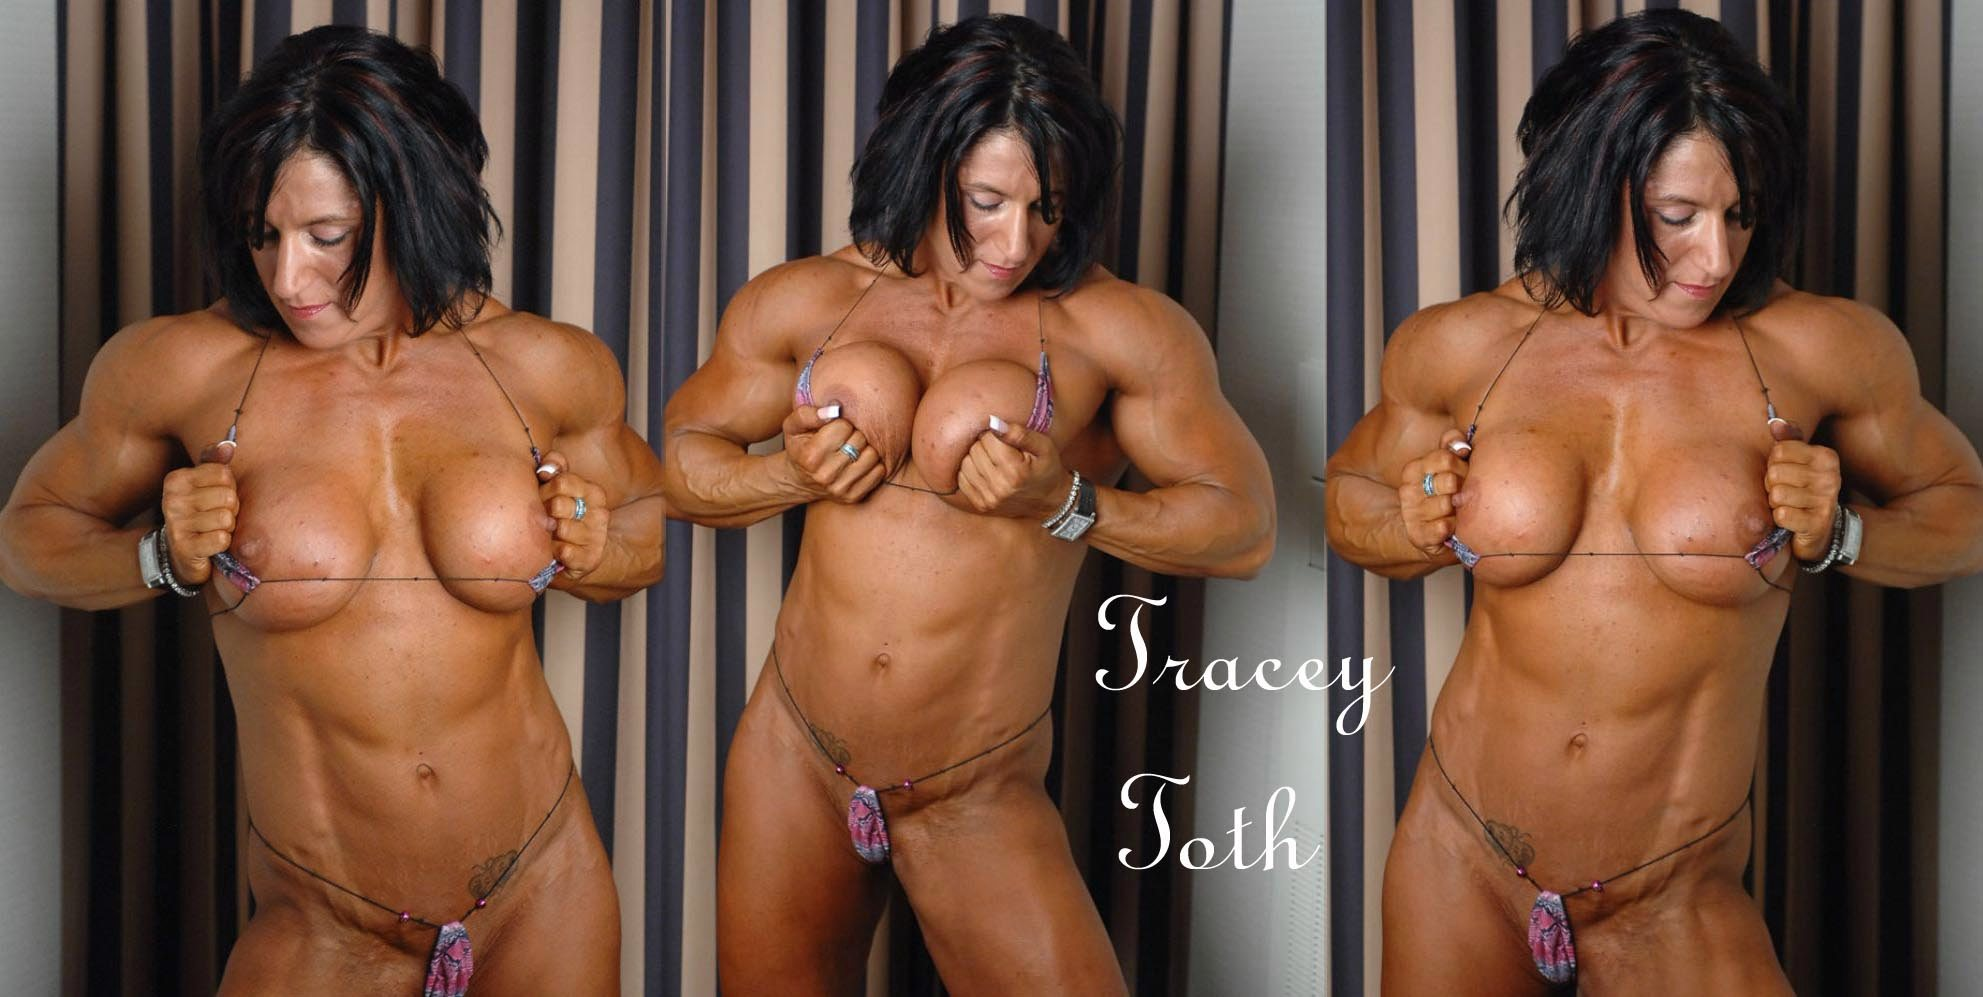 Nude Pictures Of Female Bodybuilders